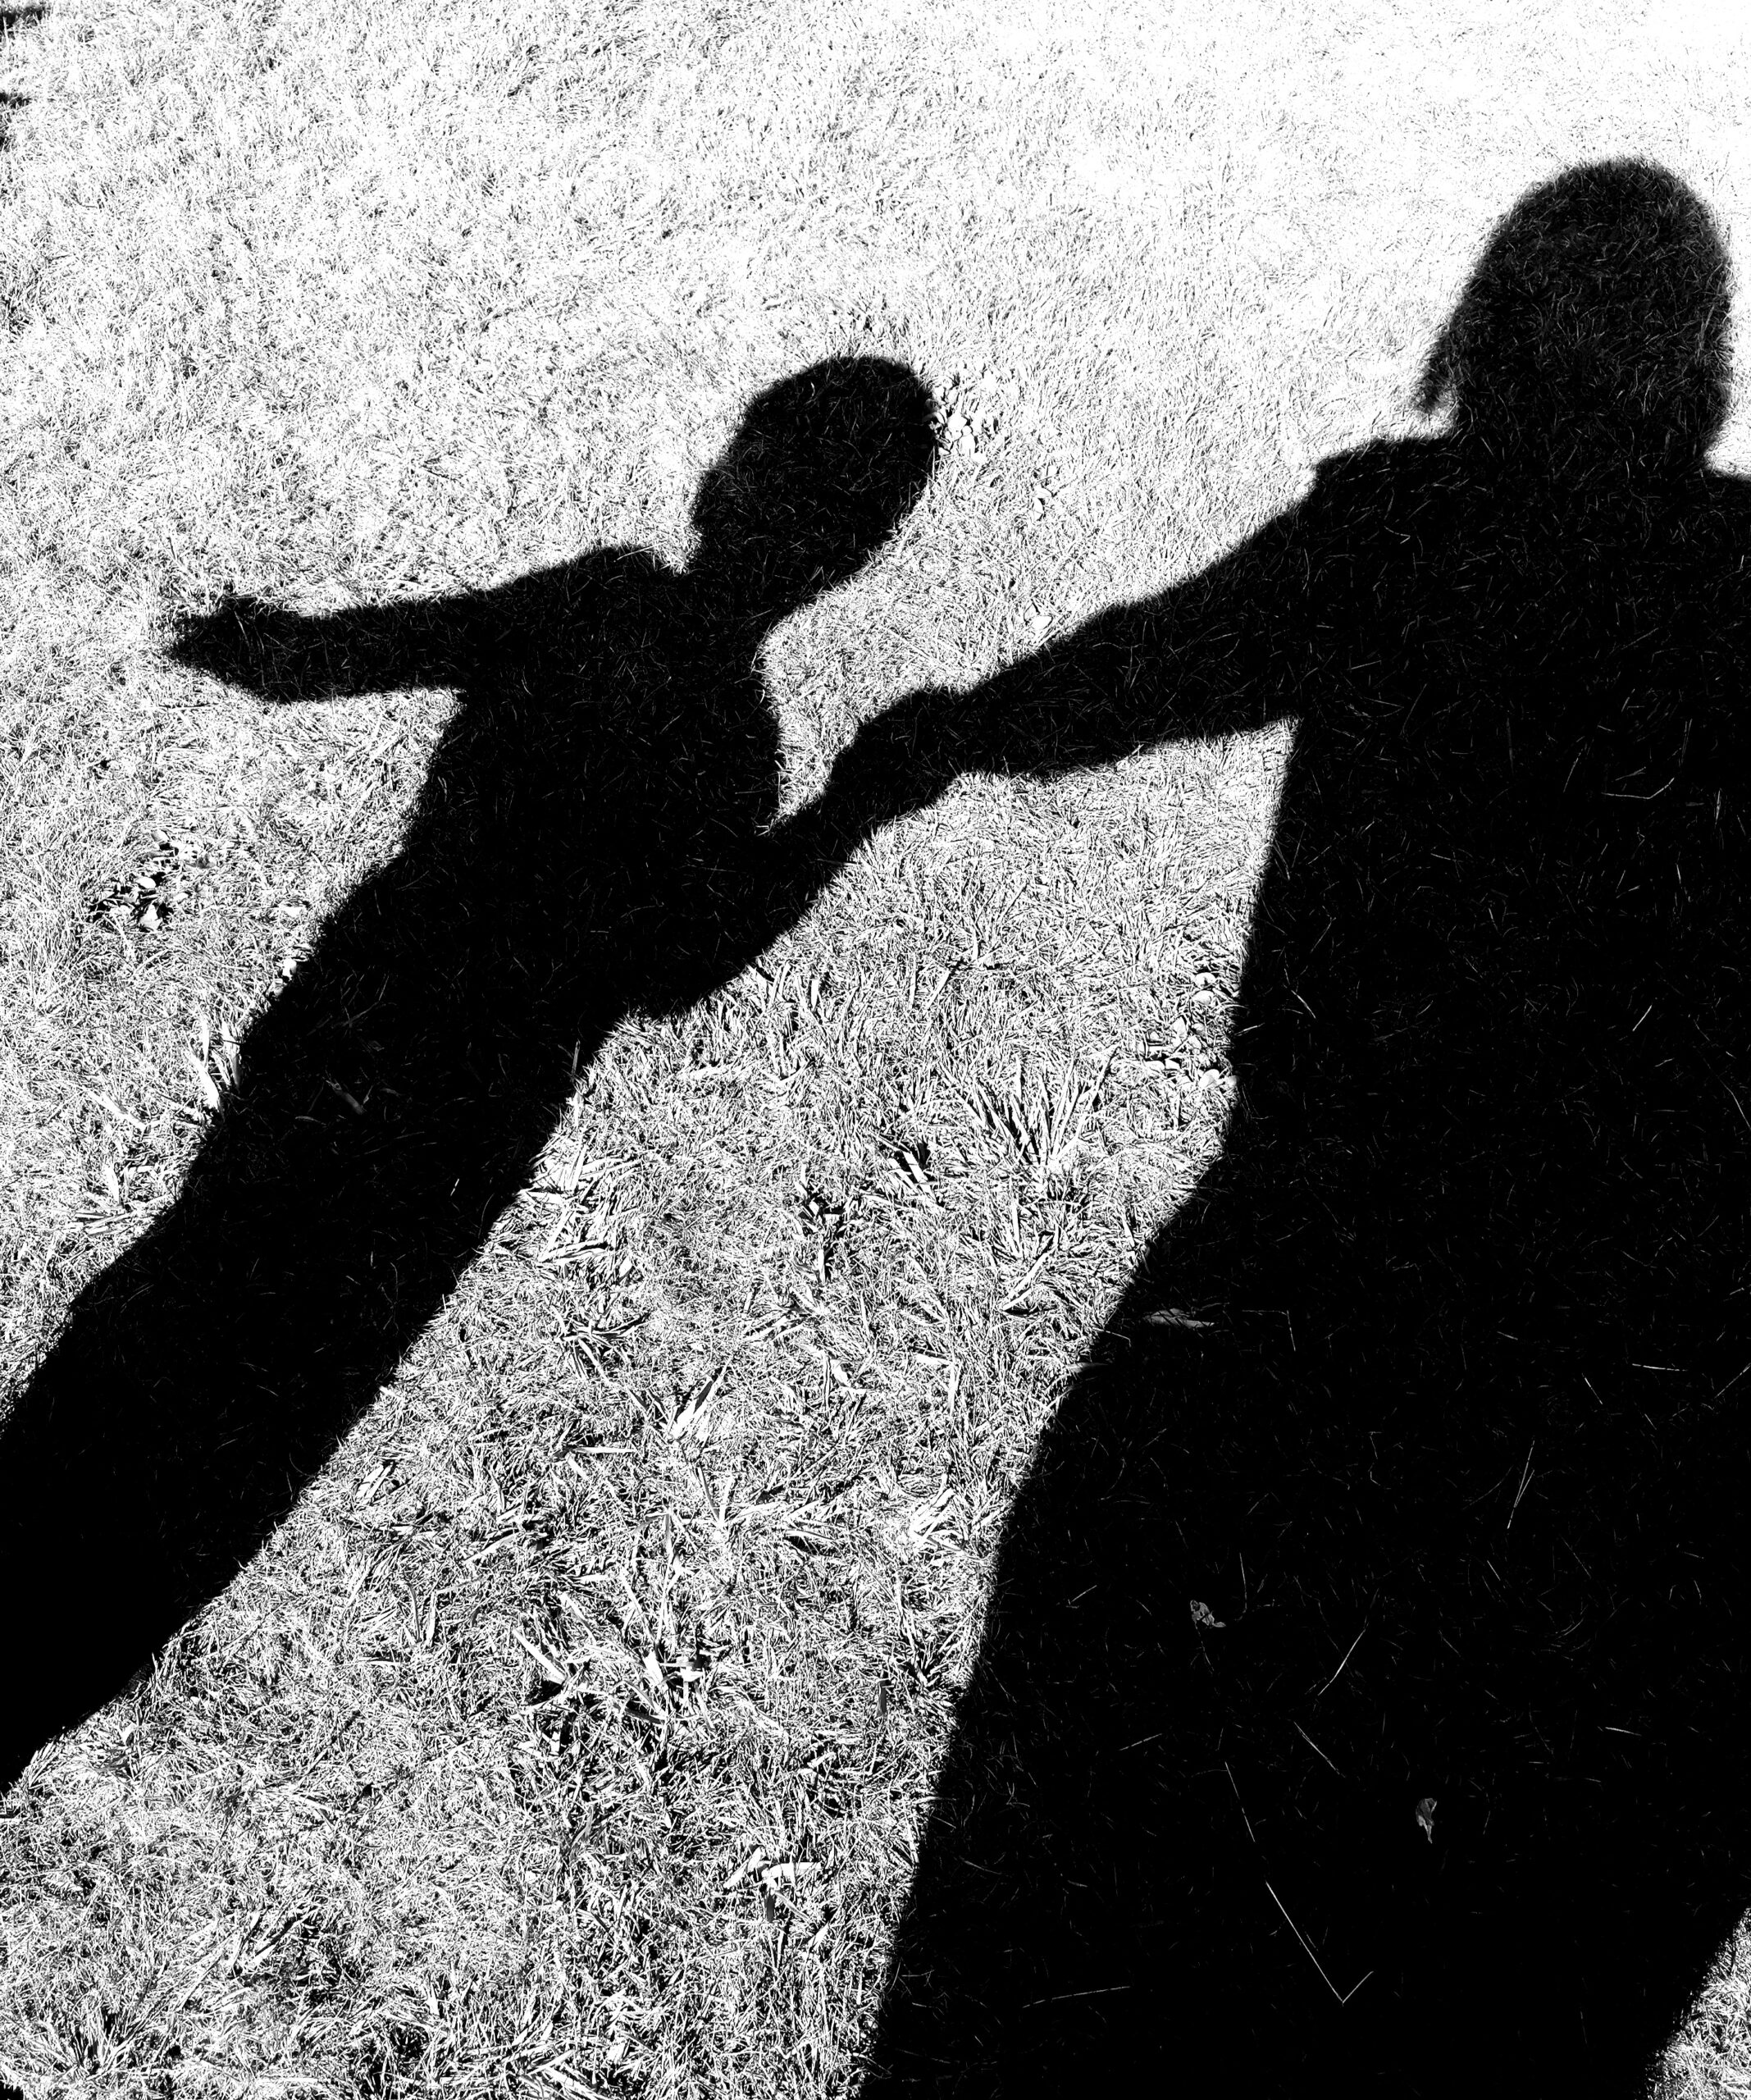 shadow image of Emma and her foster child